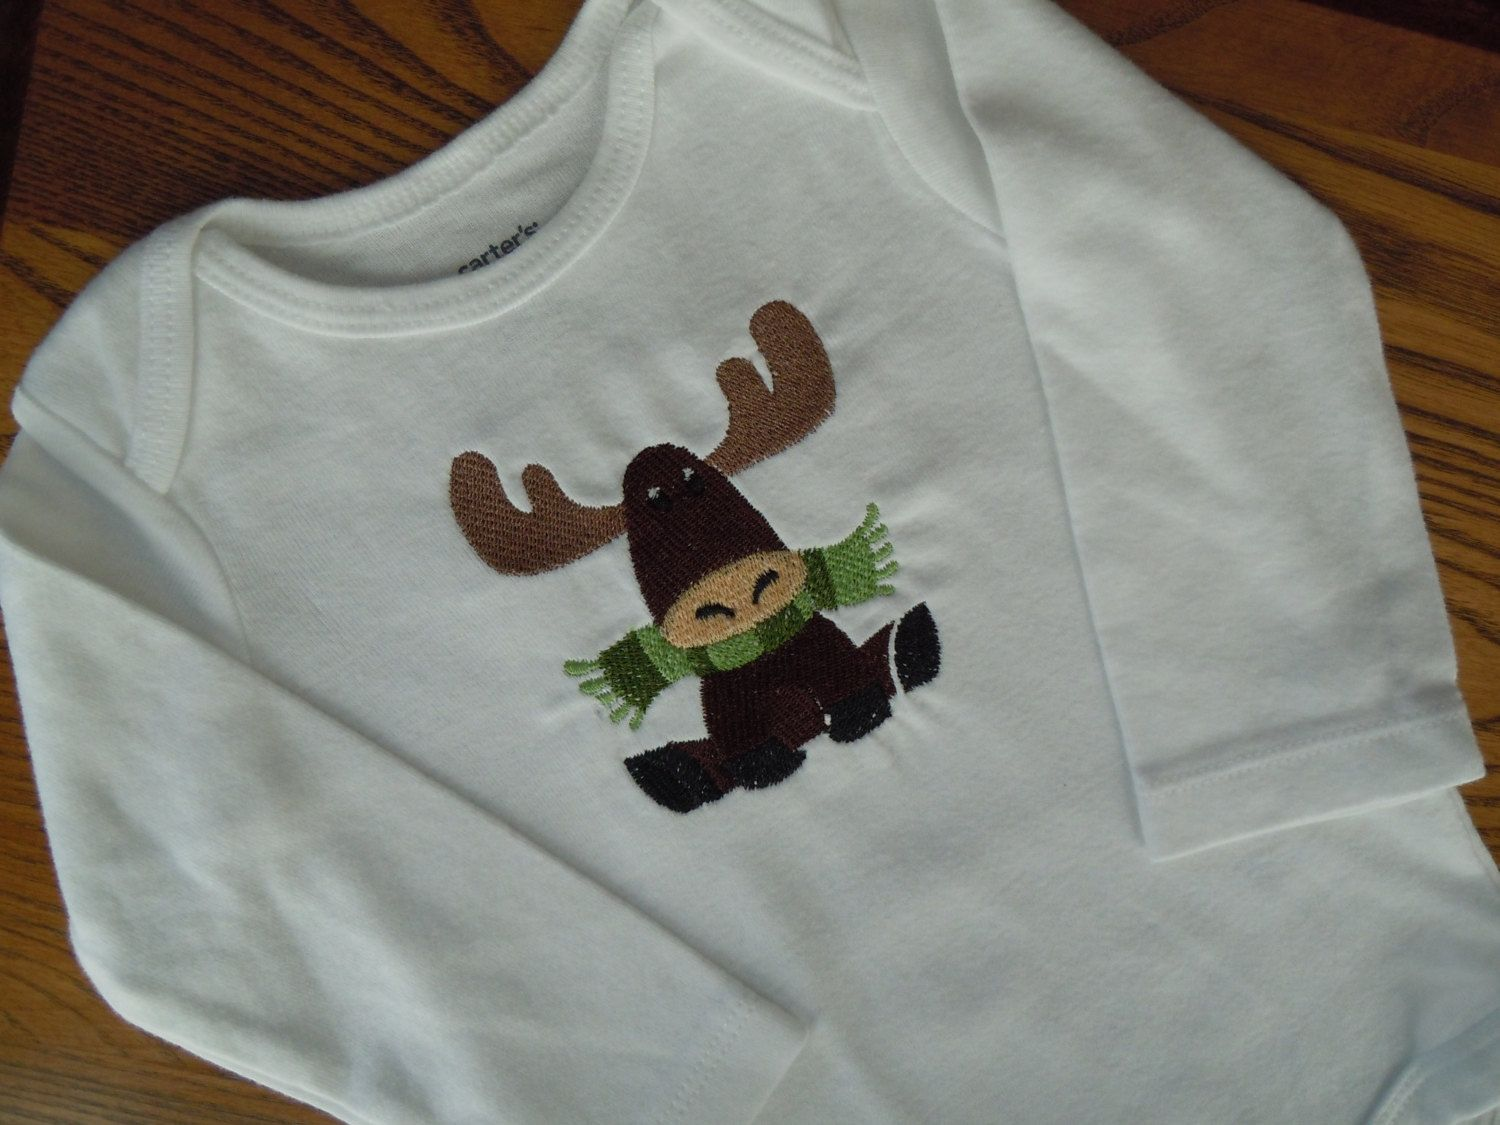 Baby Boy Onesie with Moose, Baby Bodysuit with Moose, Infant Onesie with Moose, Long Sleeve Bodysuit, Long Sleeve embroidered Onesie by SewFlurry on Etsy